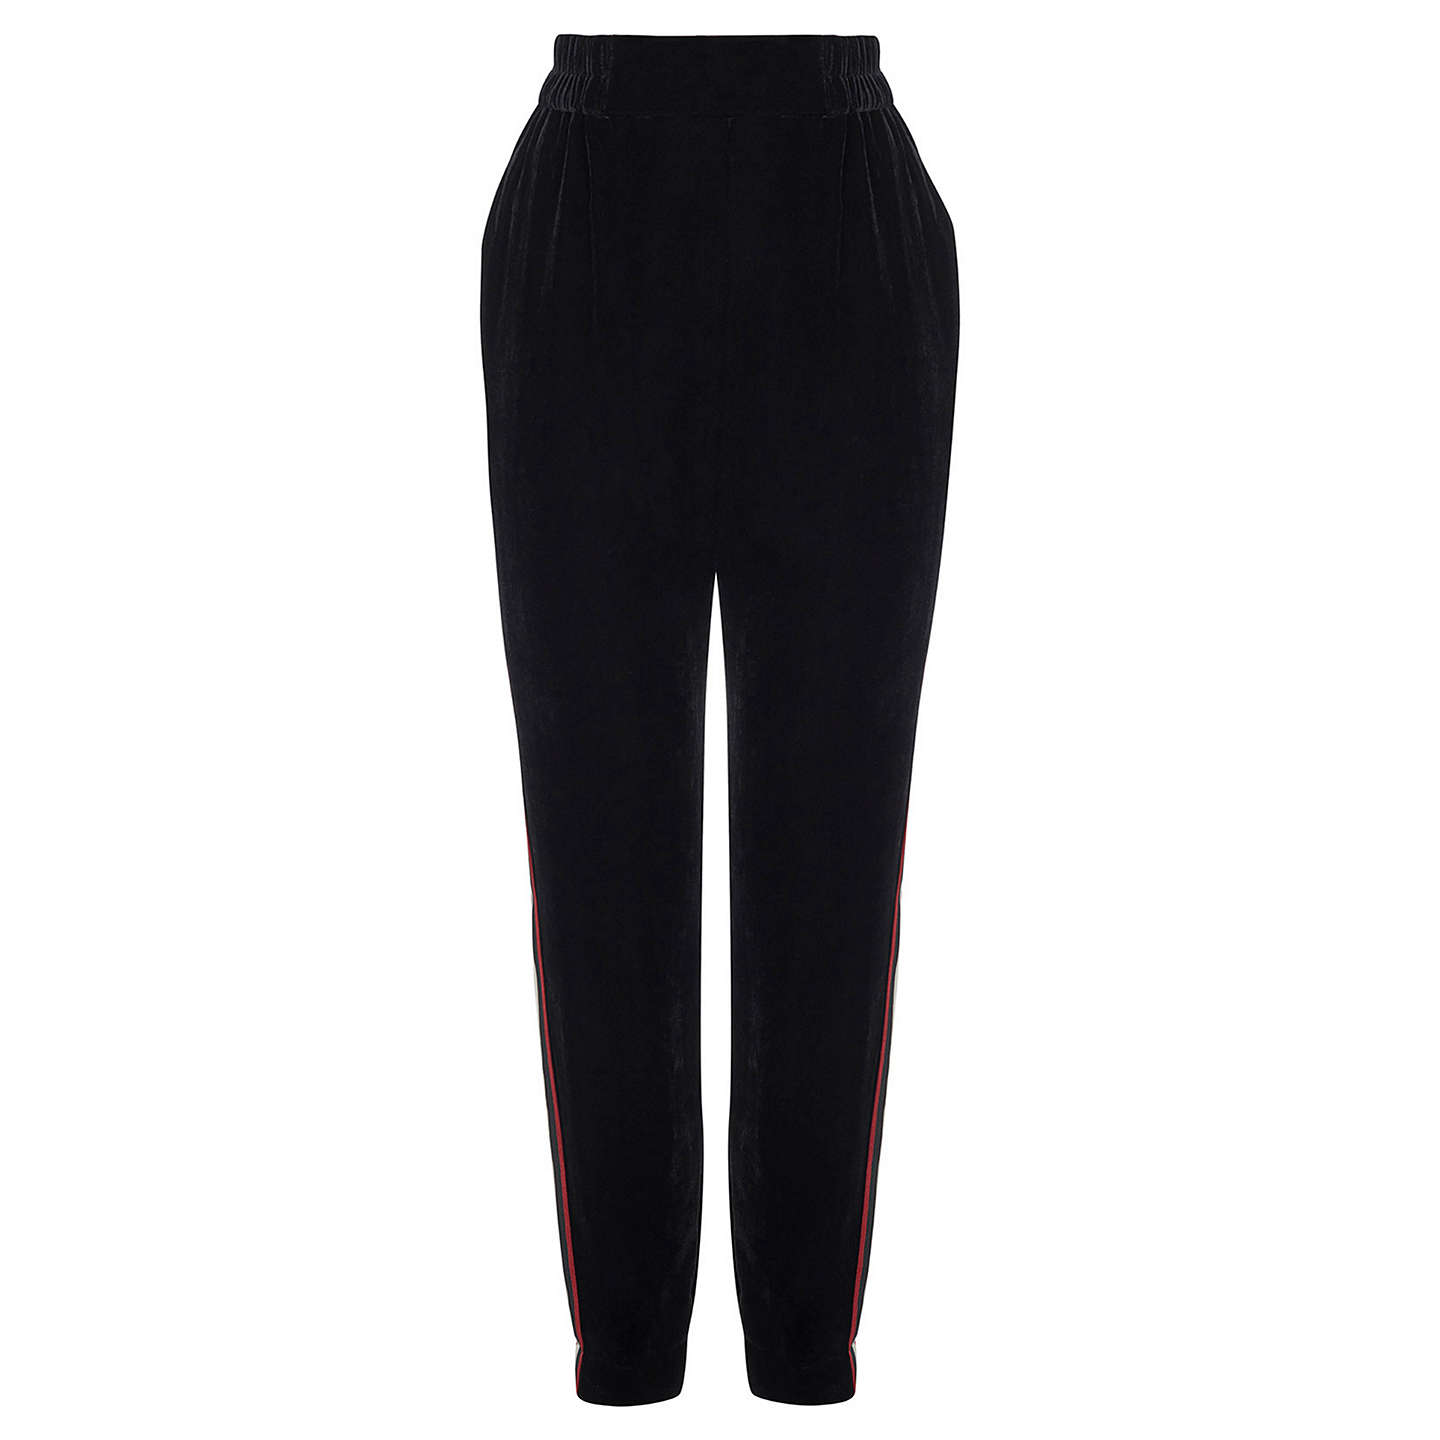 BuyKaren Millen Velvet Sporty Trousers, Black, 6 Online at johnlewis.com